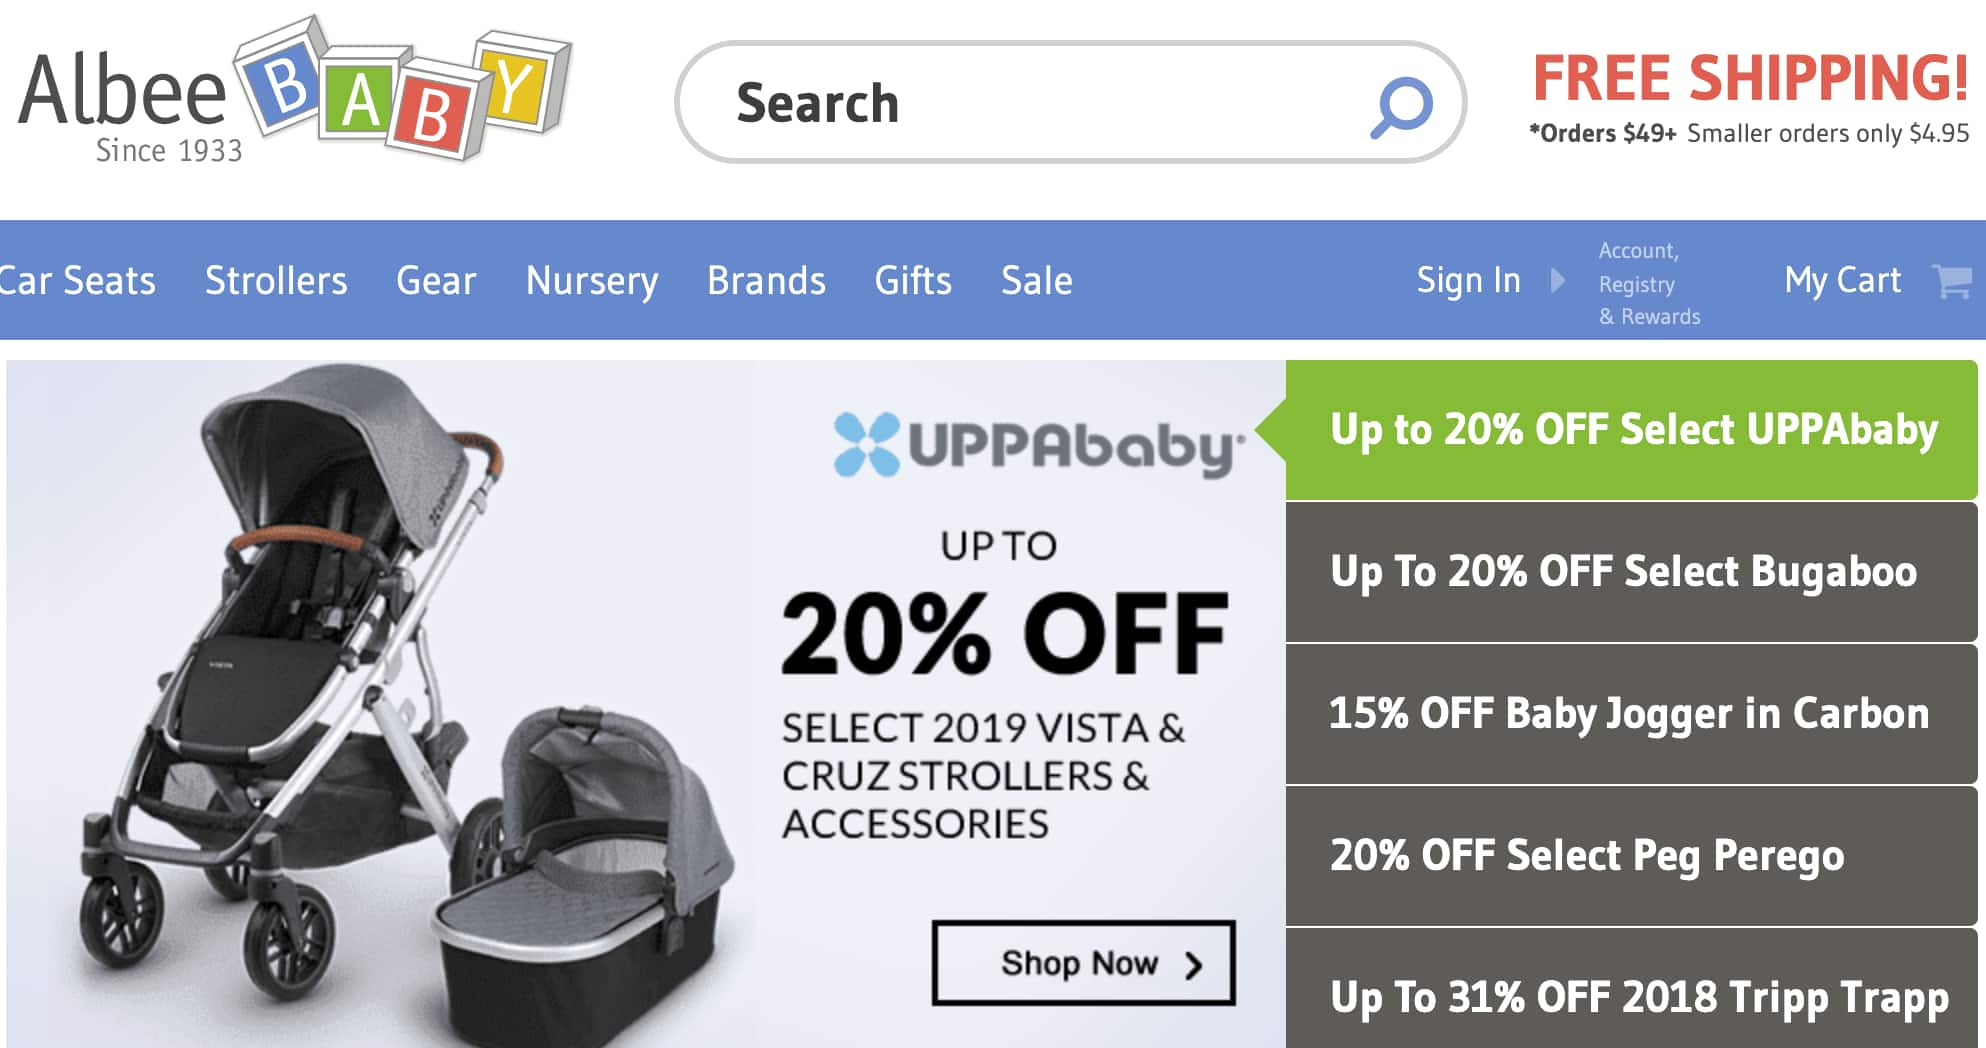 Up to 20% off Uppababy and Bugaboo + No Tax + Fee Shipping at www.albeebaby.com | Bugaboo Fox Complete Stroller $967.20 | Flash Sale Ends Tonight